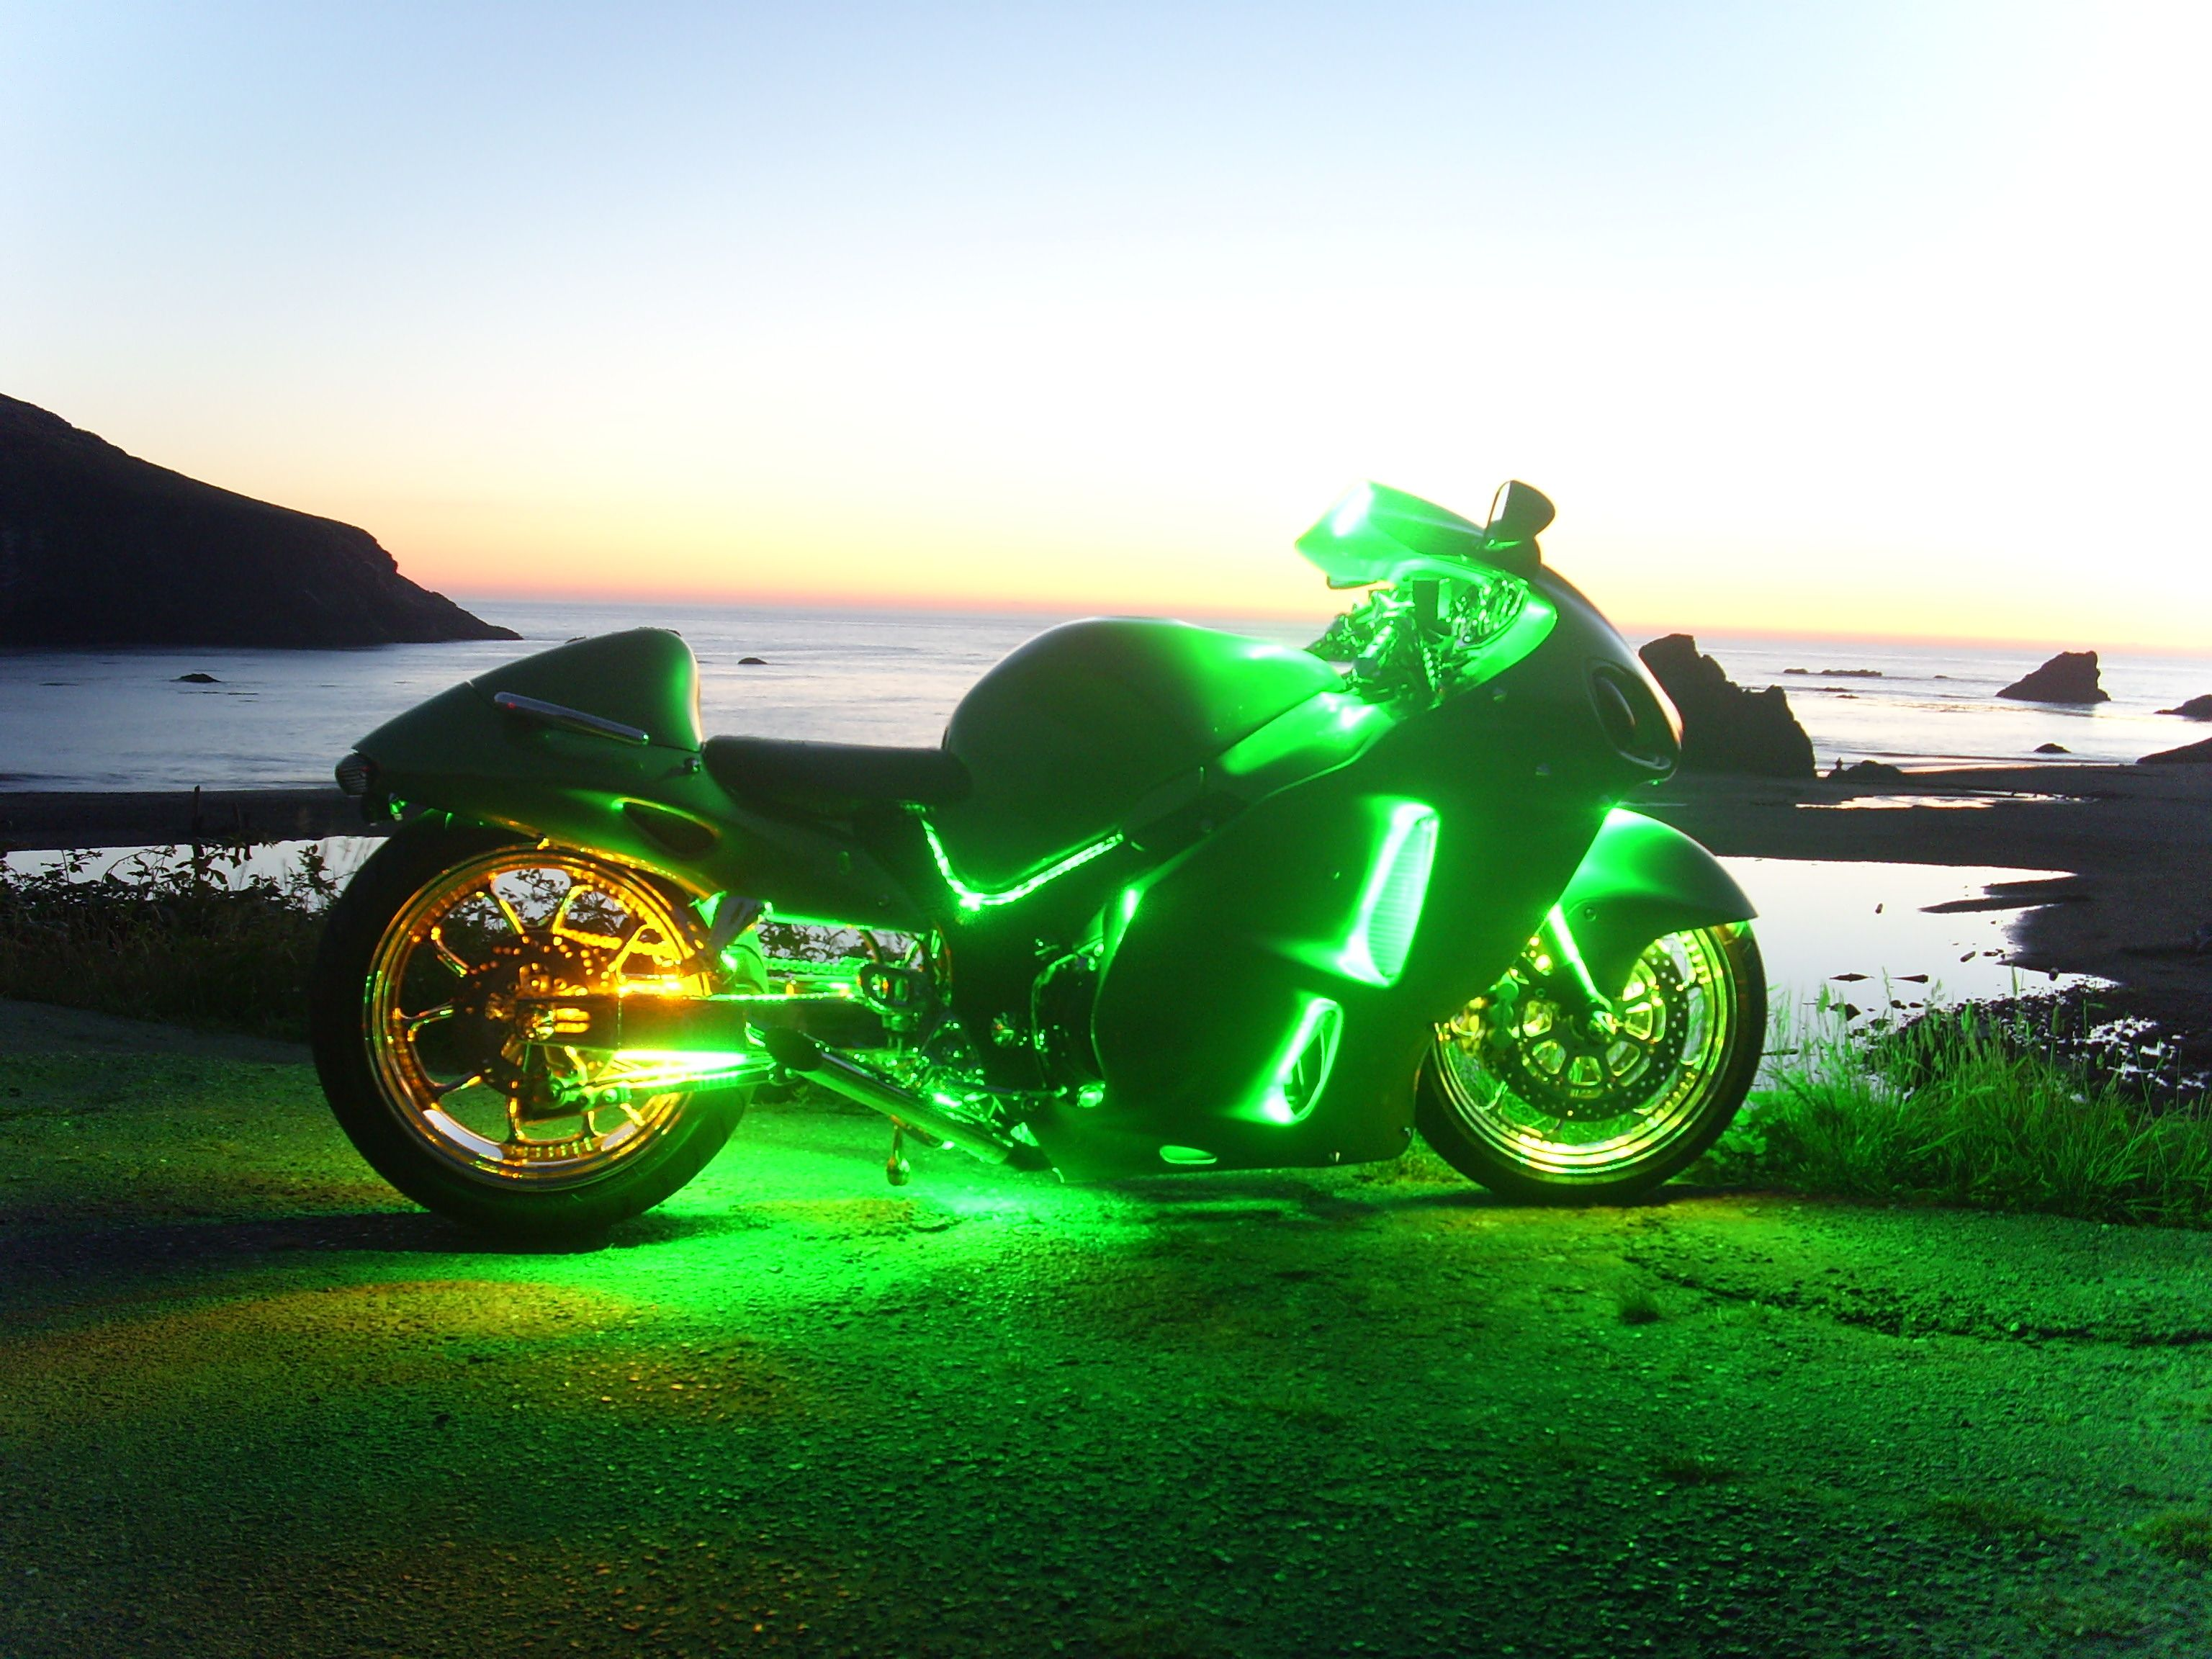 Led Light Strips For Motorcycles 21 Best Light Up Images On Pinterest  Light Up Motorbikes And Lights